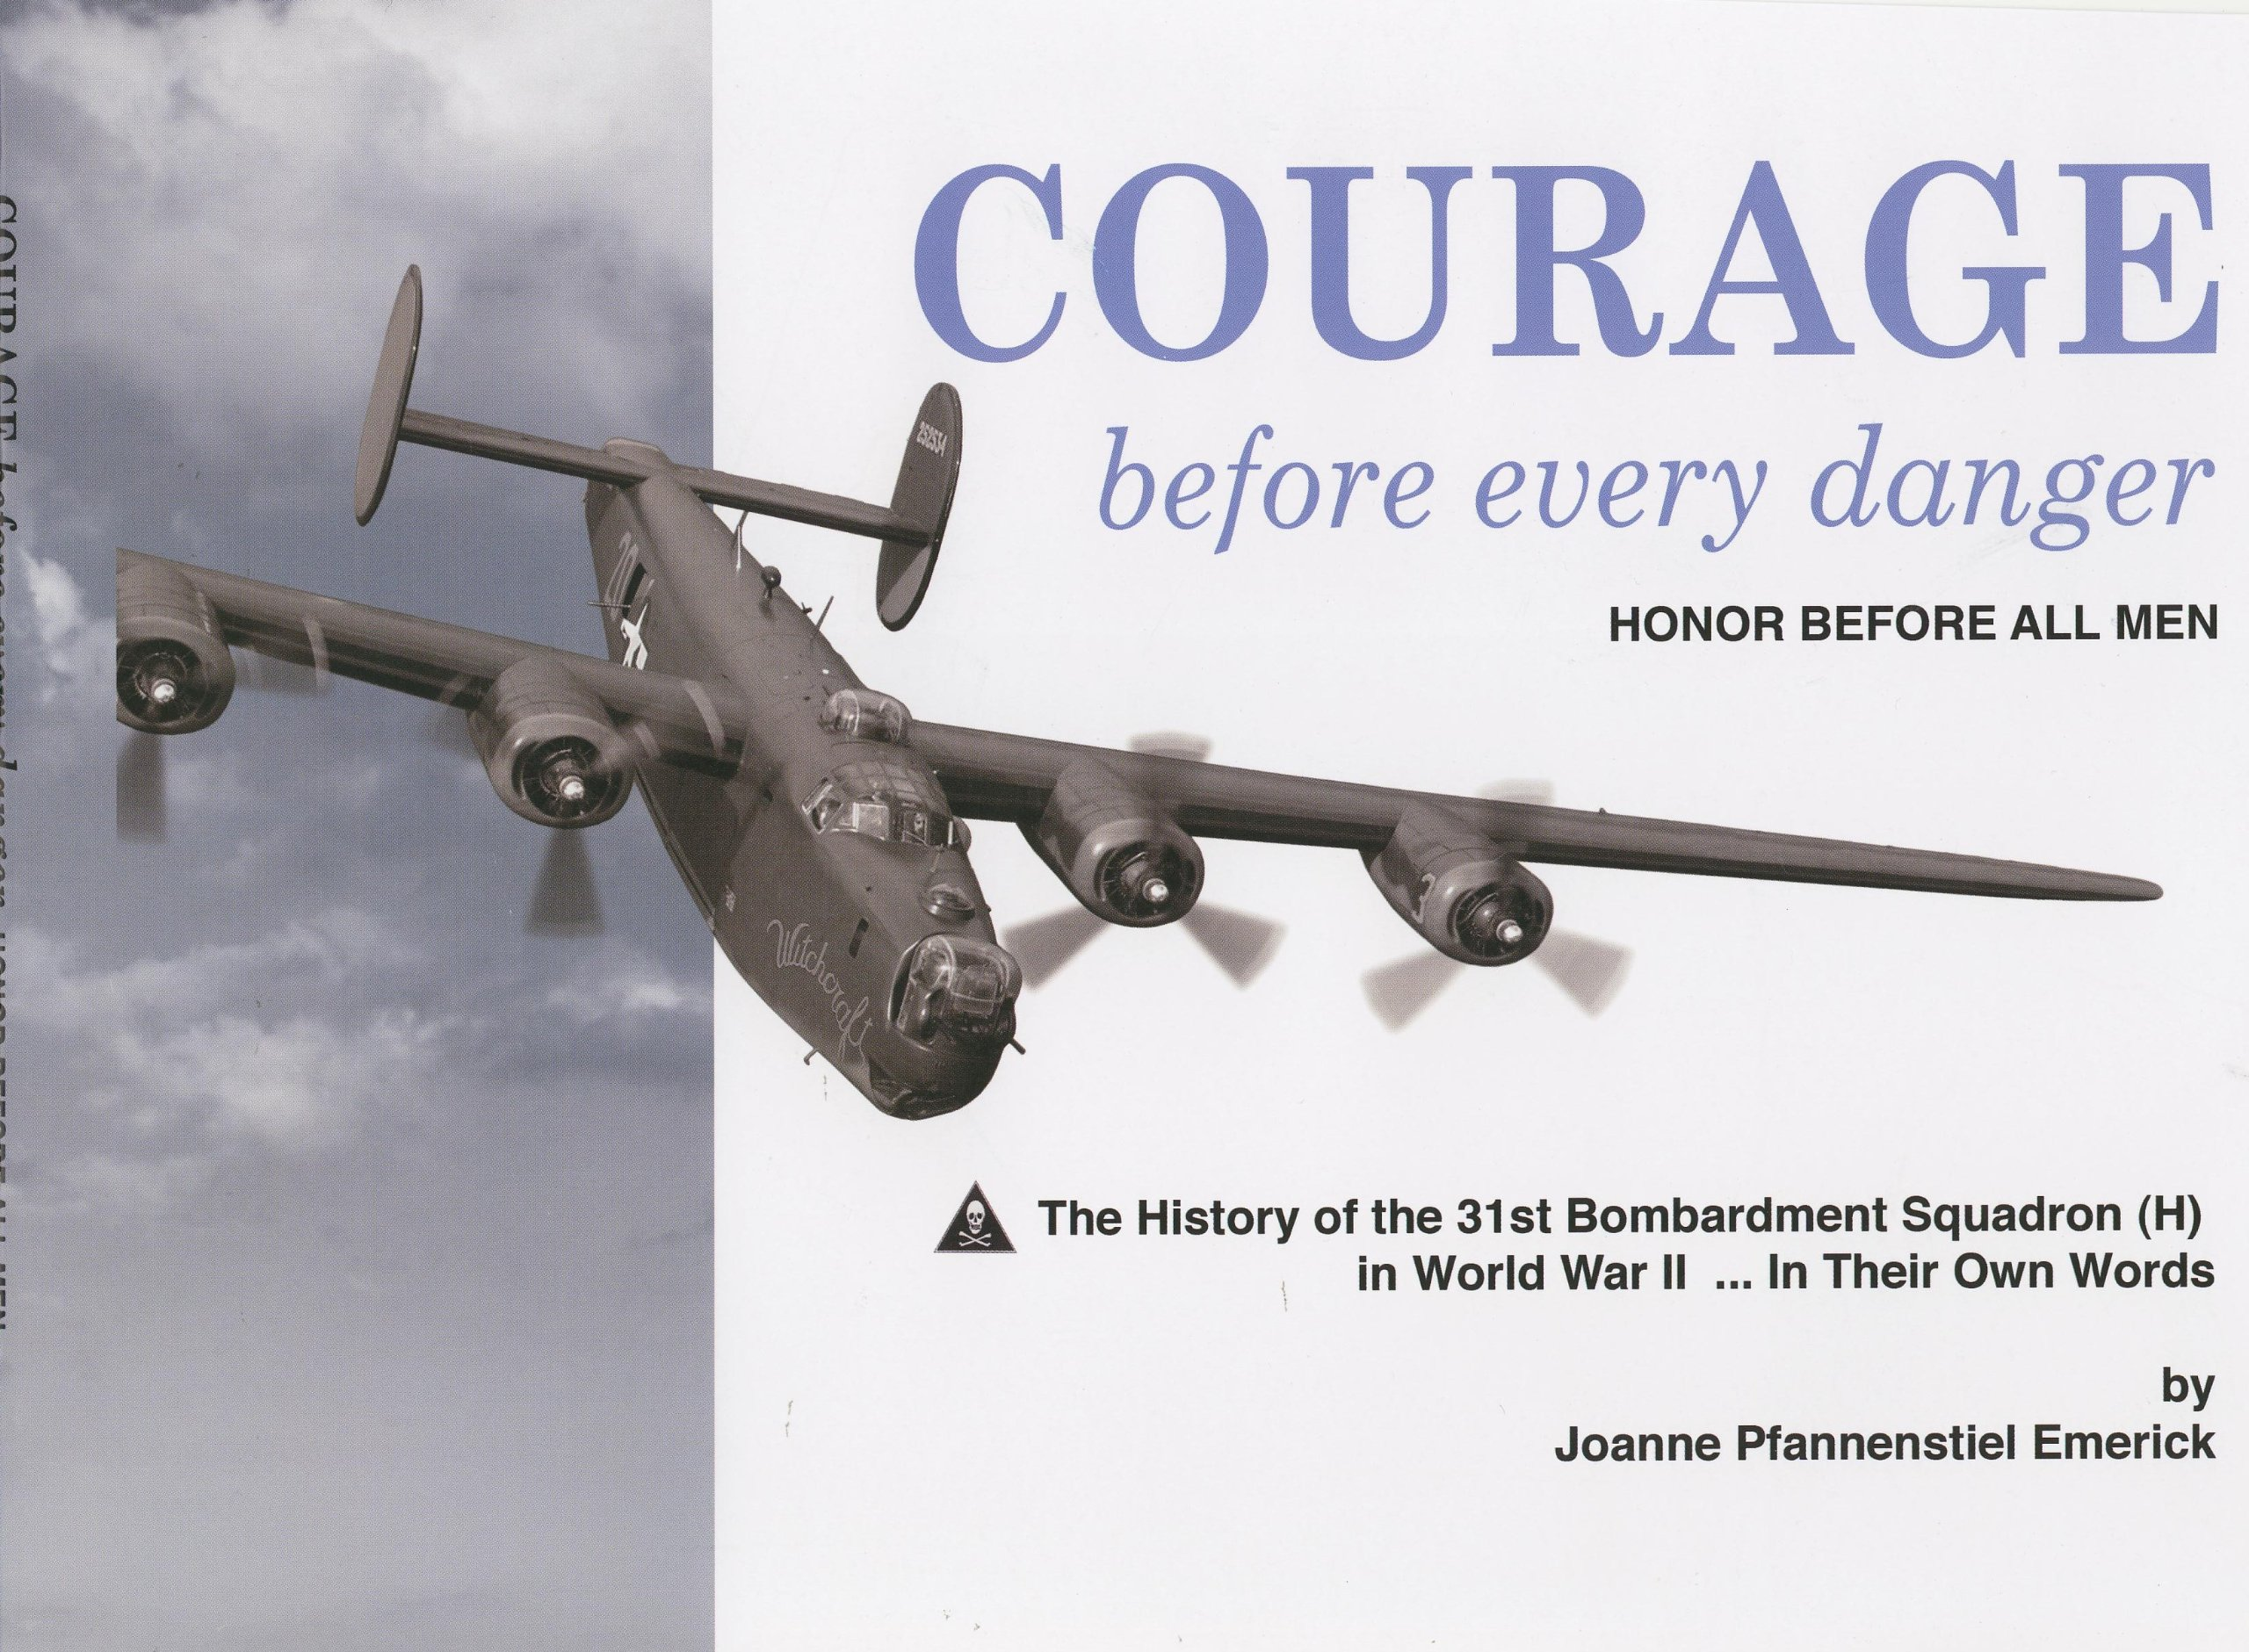 Download Courage Before Every Danger, Honor Before All Men: The History of the 31st Bombardment Squadron (H) by Joanne Pfannenstiel Emerick (2010-05-03) ebook